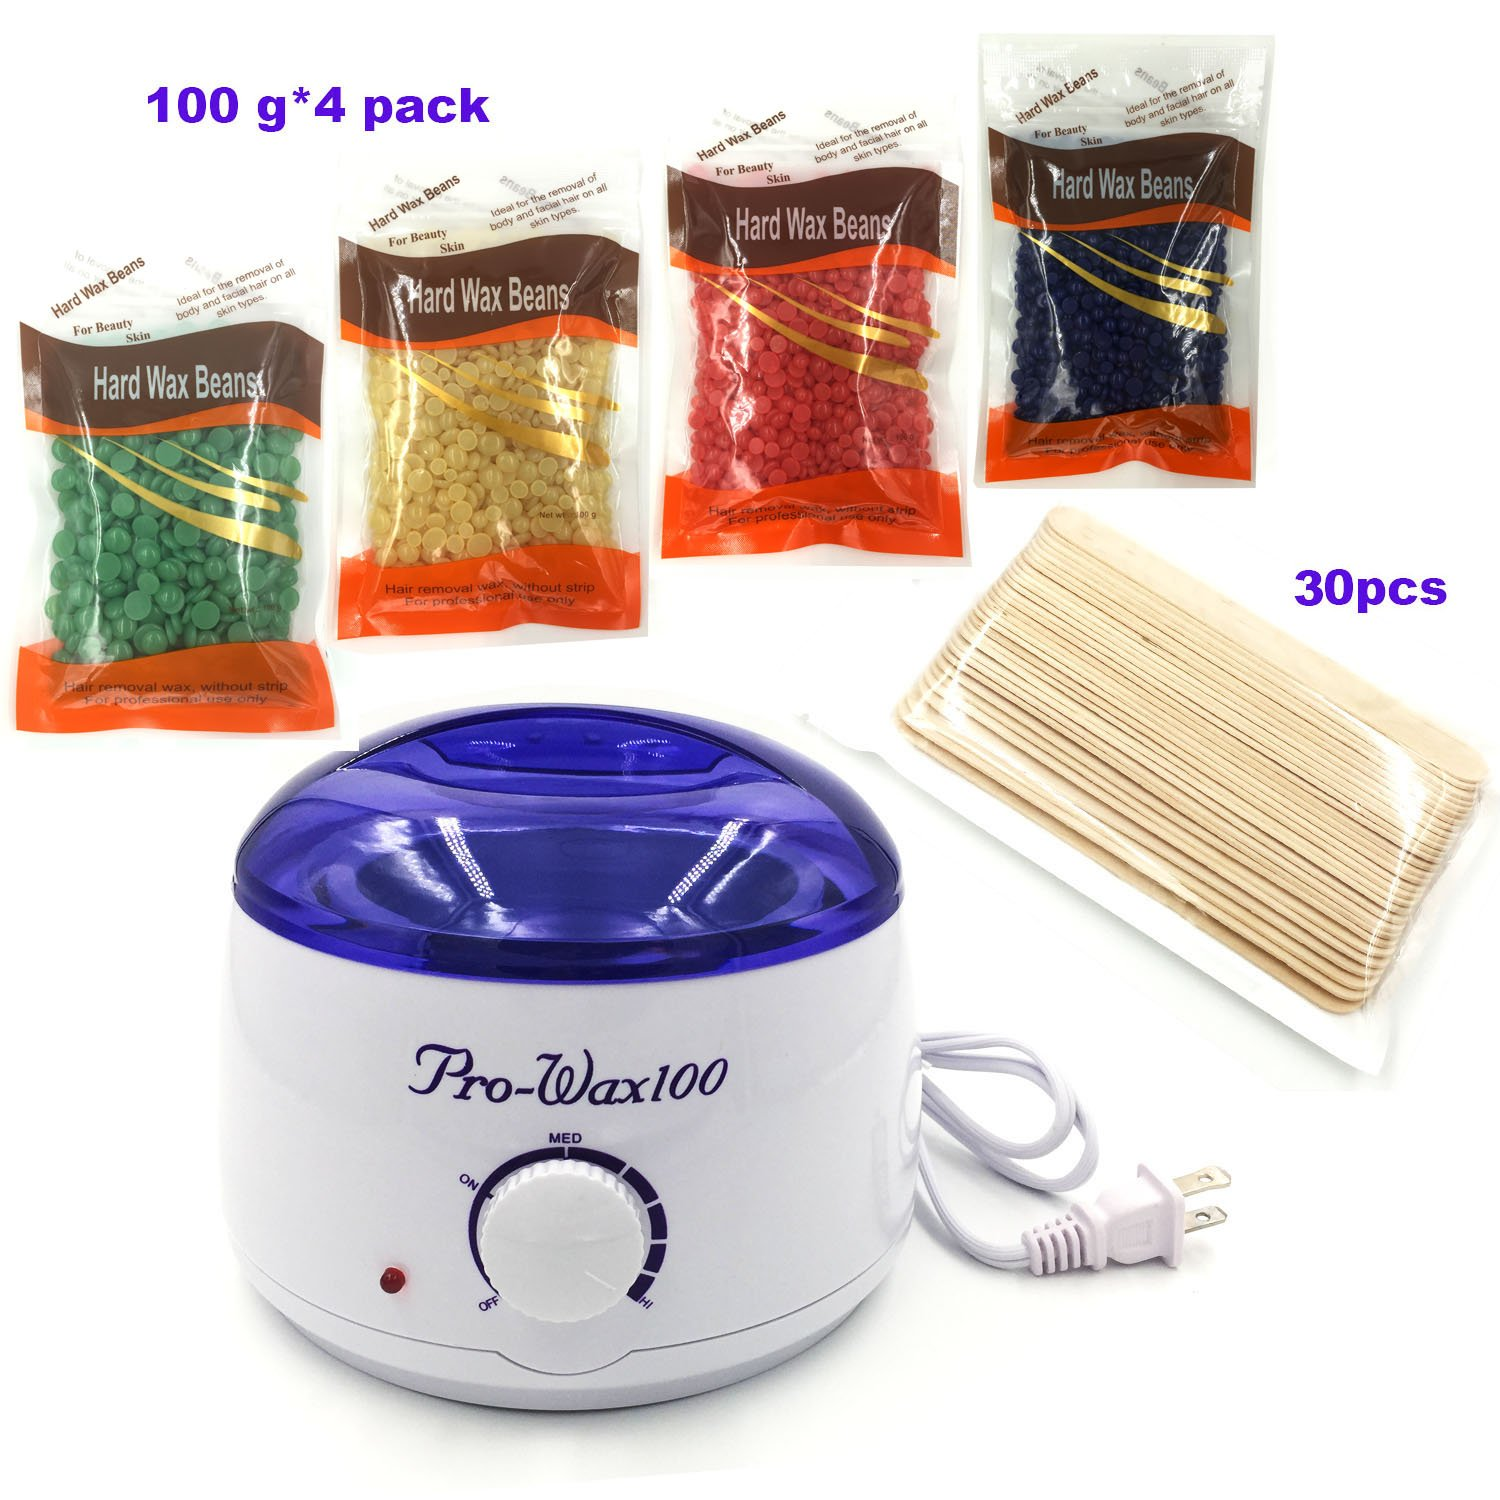 LILUOE Wax Warmer Electric with 4 Packs Hard Wax Beans and 30 Applicator Sticks Home Waxing Kit (blue)